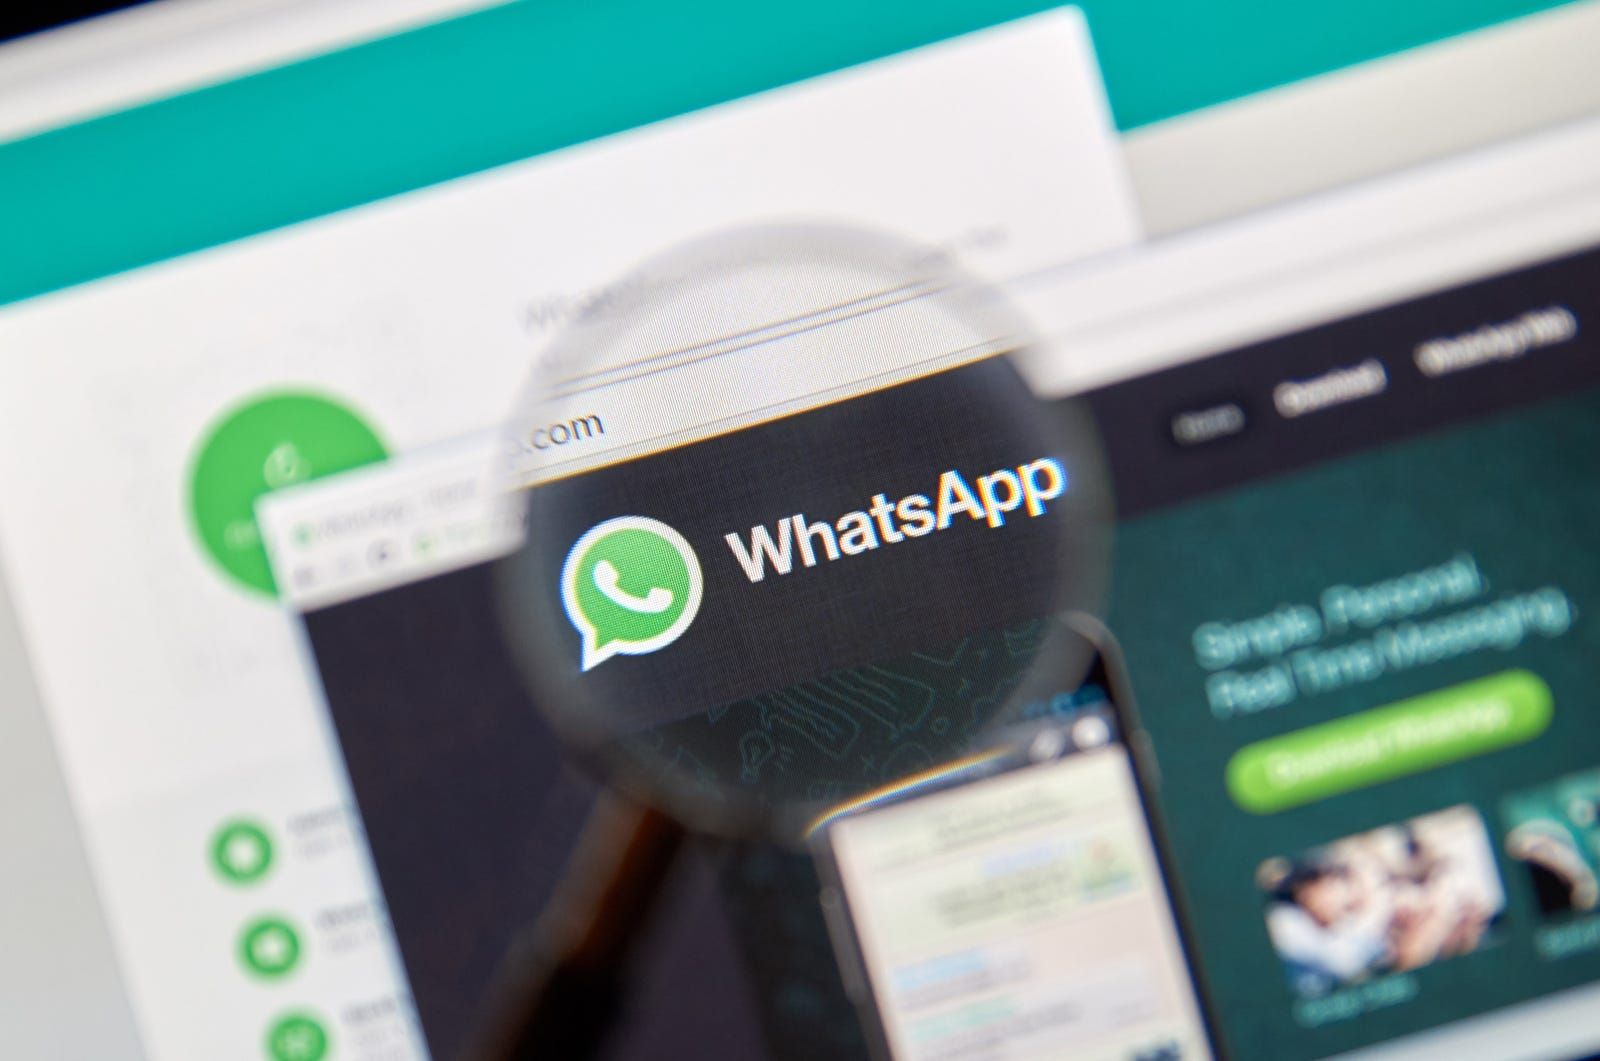 WhatsApp Is Now The Second NonGoogle Android App To